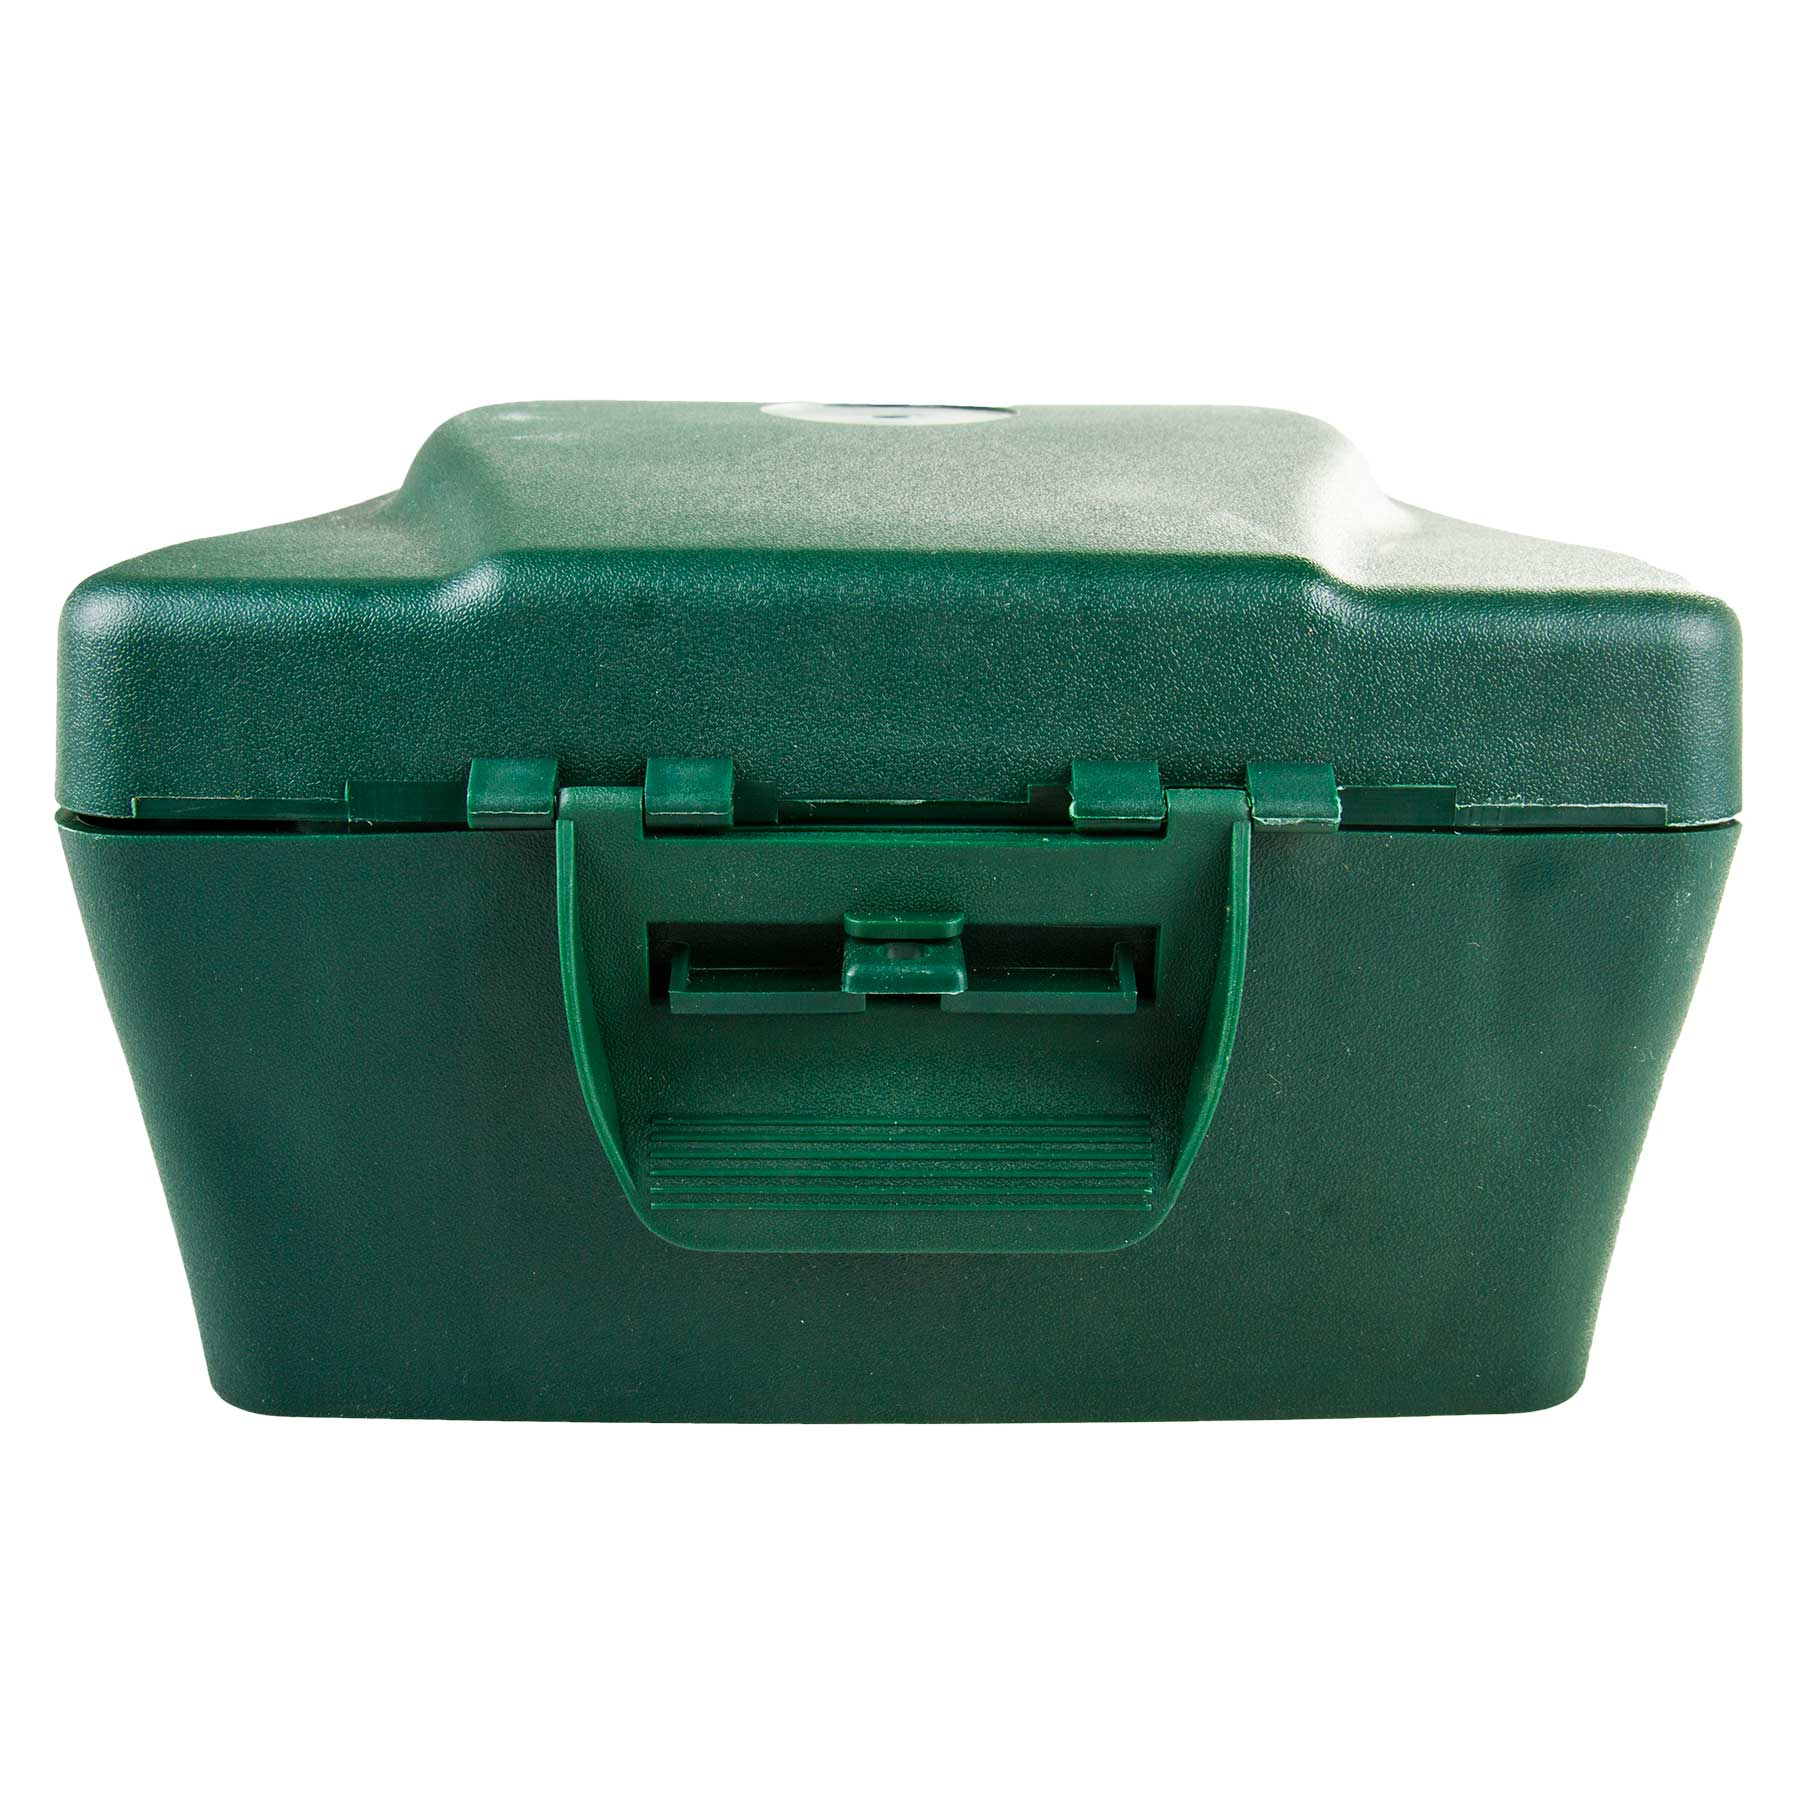 Masterplug Green Weatherproof Box For Outdoor Electrical